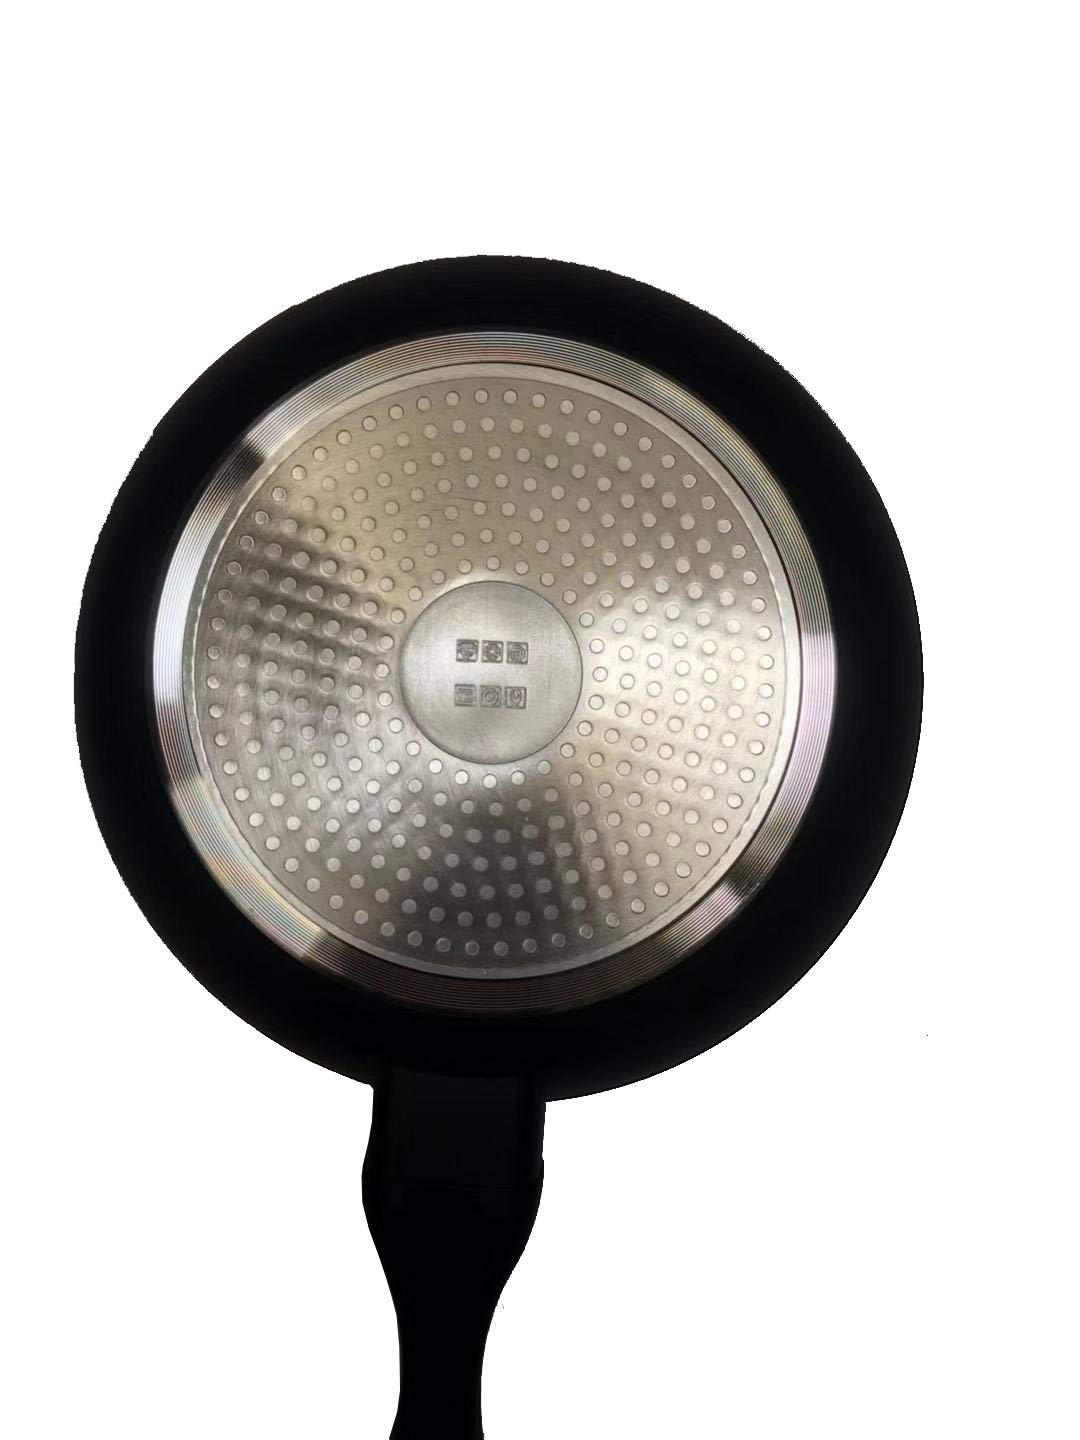 Modin Home Inc 8 inch and 10 inch Forged Aluminum Fry Pan with Nonstick Coating and Bakelite Handle 10 inch